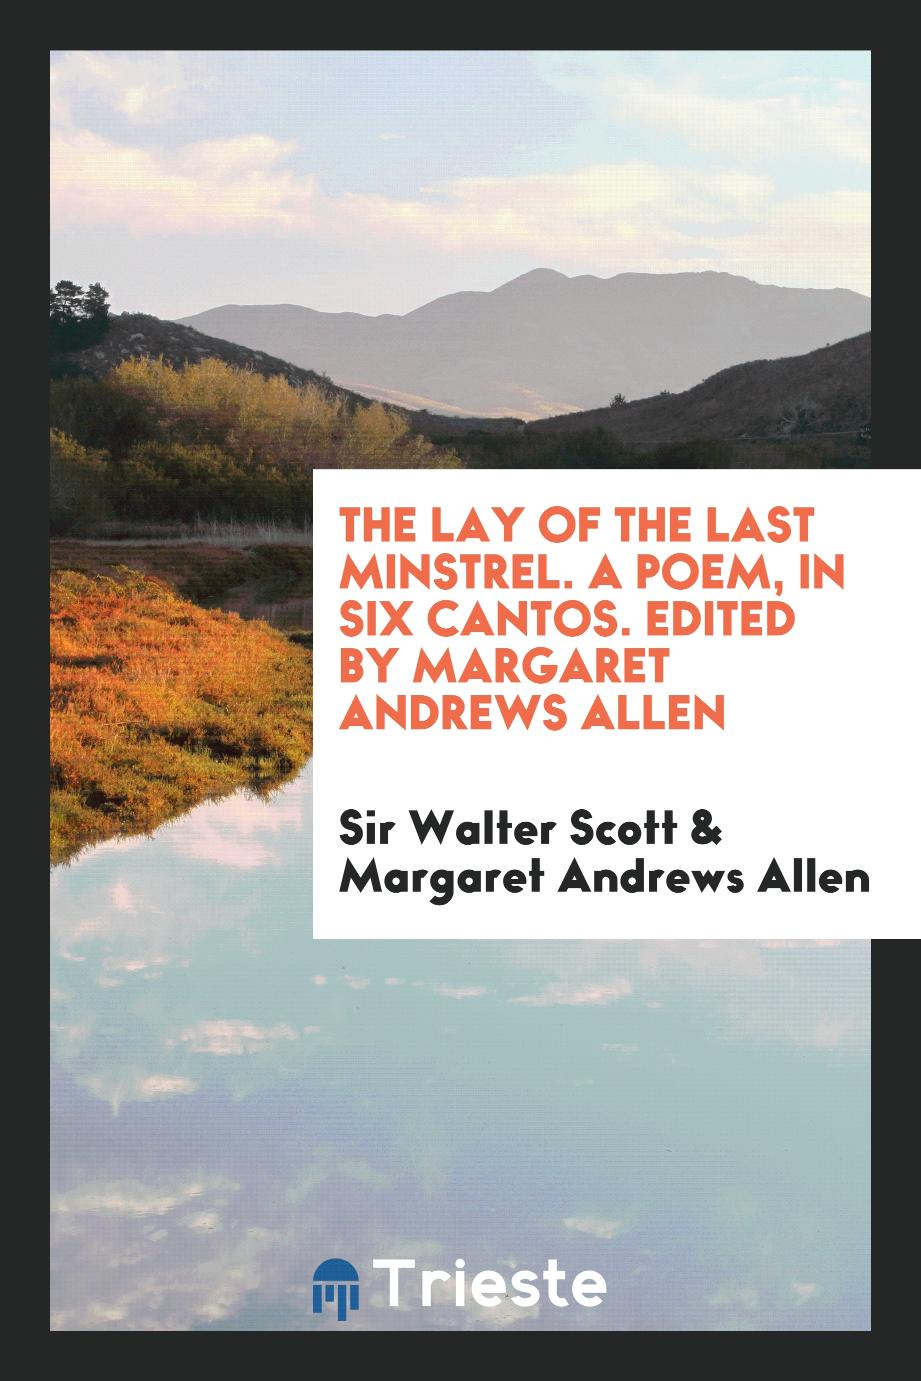 The Lay of the Last Minstrel. A Poem, in Six Cantos. Edited by Margaret Andrews Allen